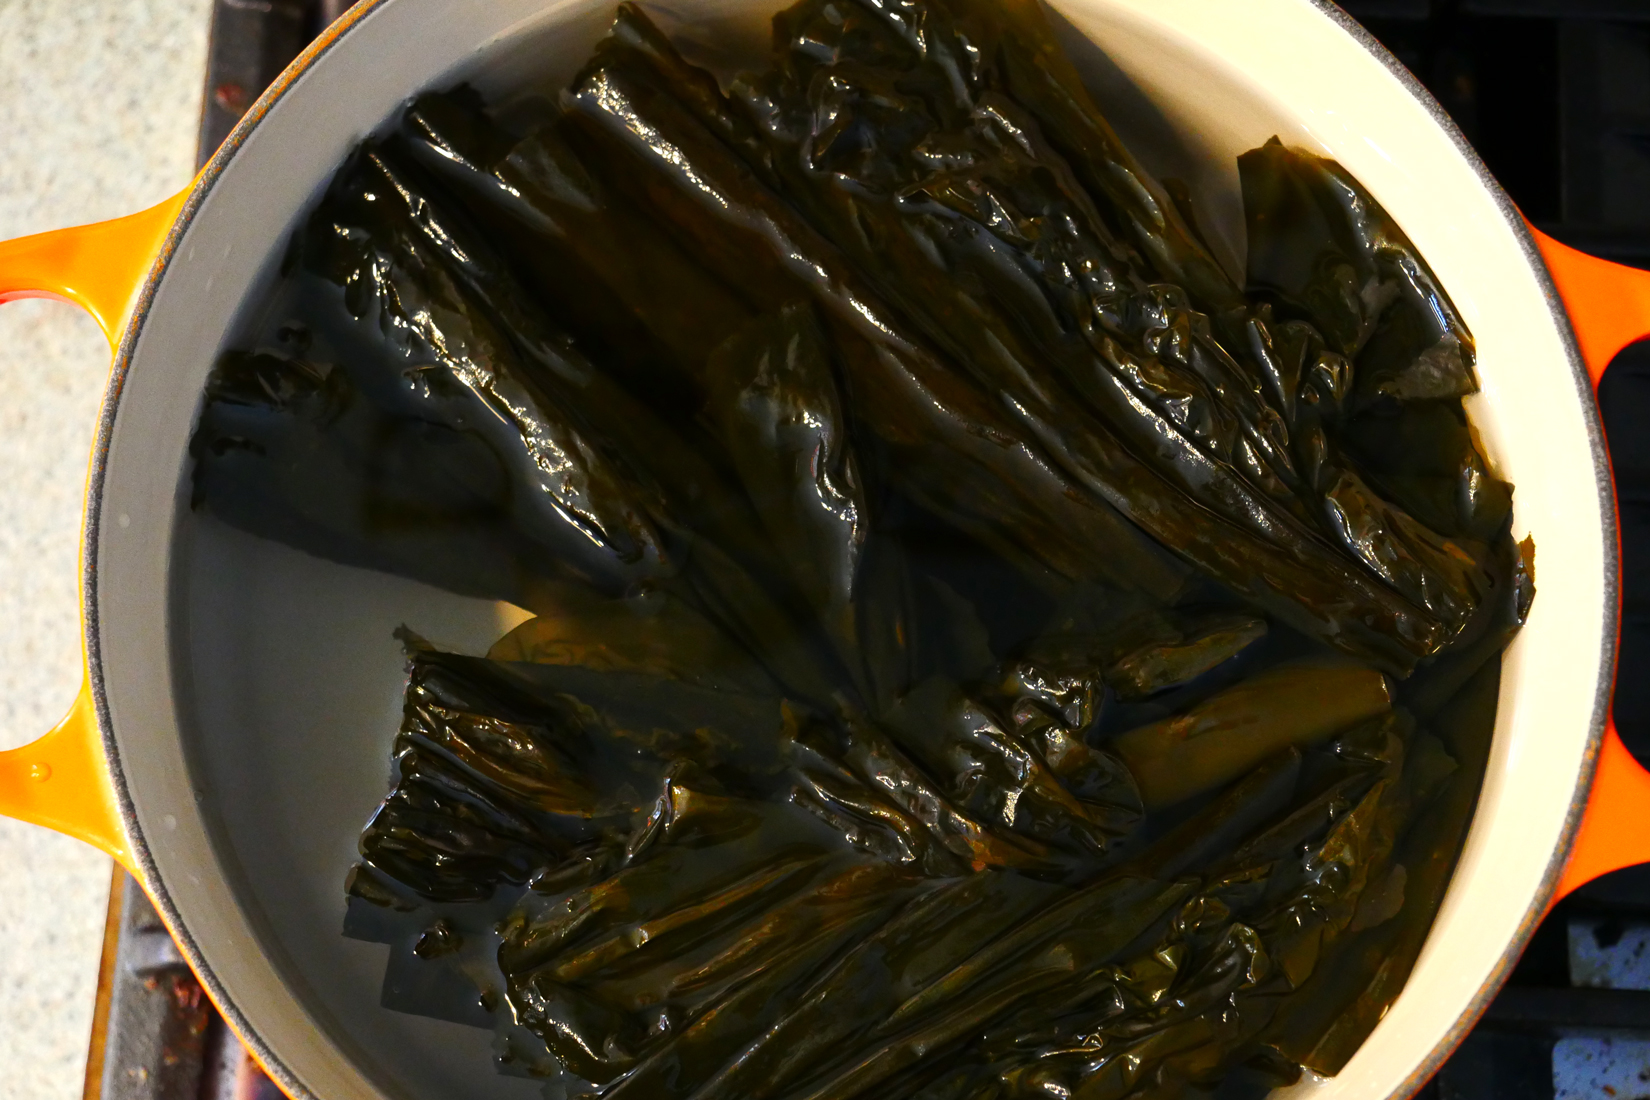 I brought that up to ALMOST a boil, turned off the heat and removed the kombu with tongs.